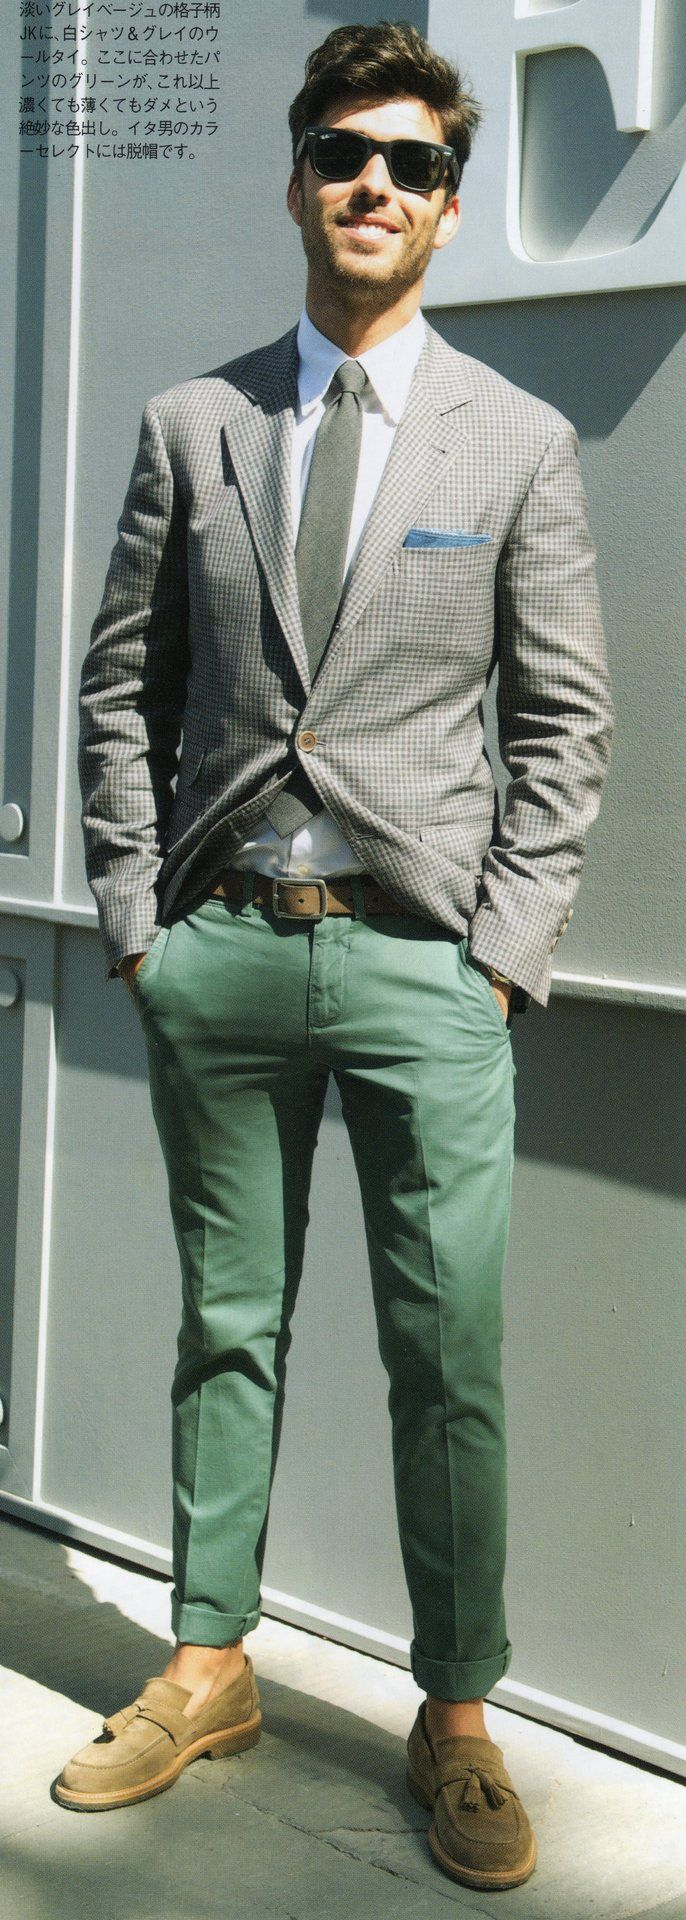 Awesome pants.